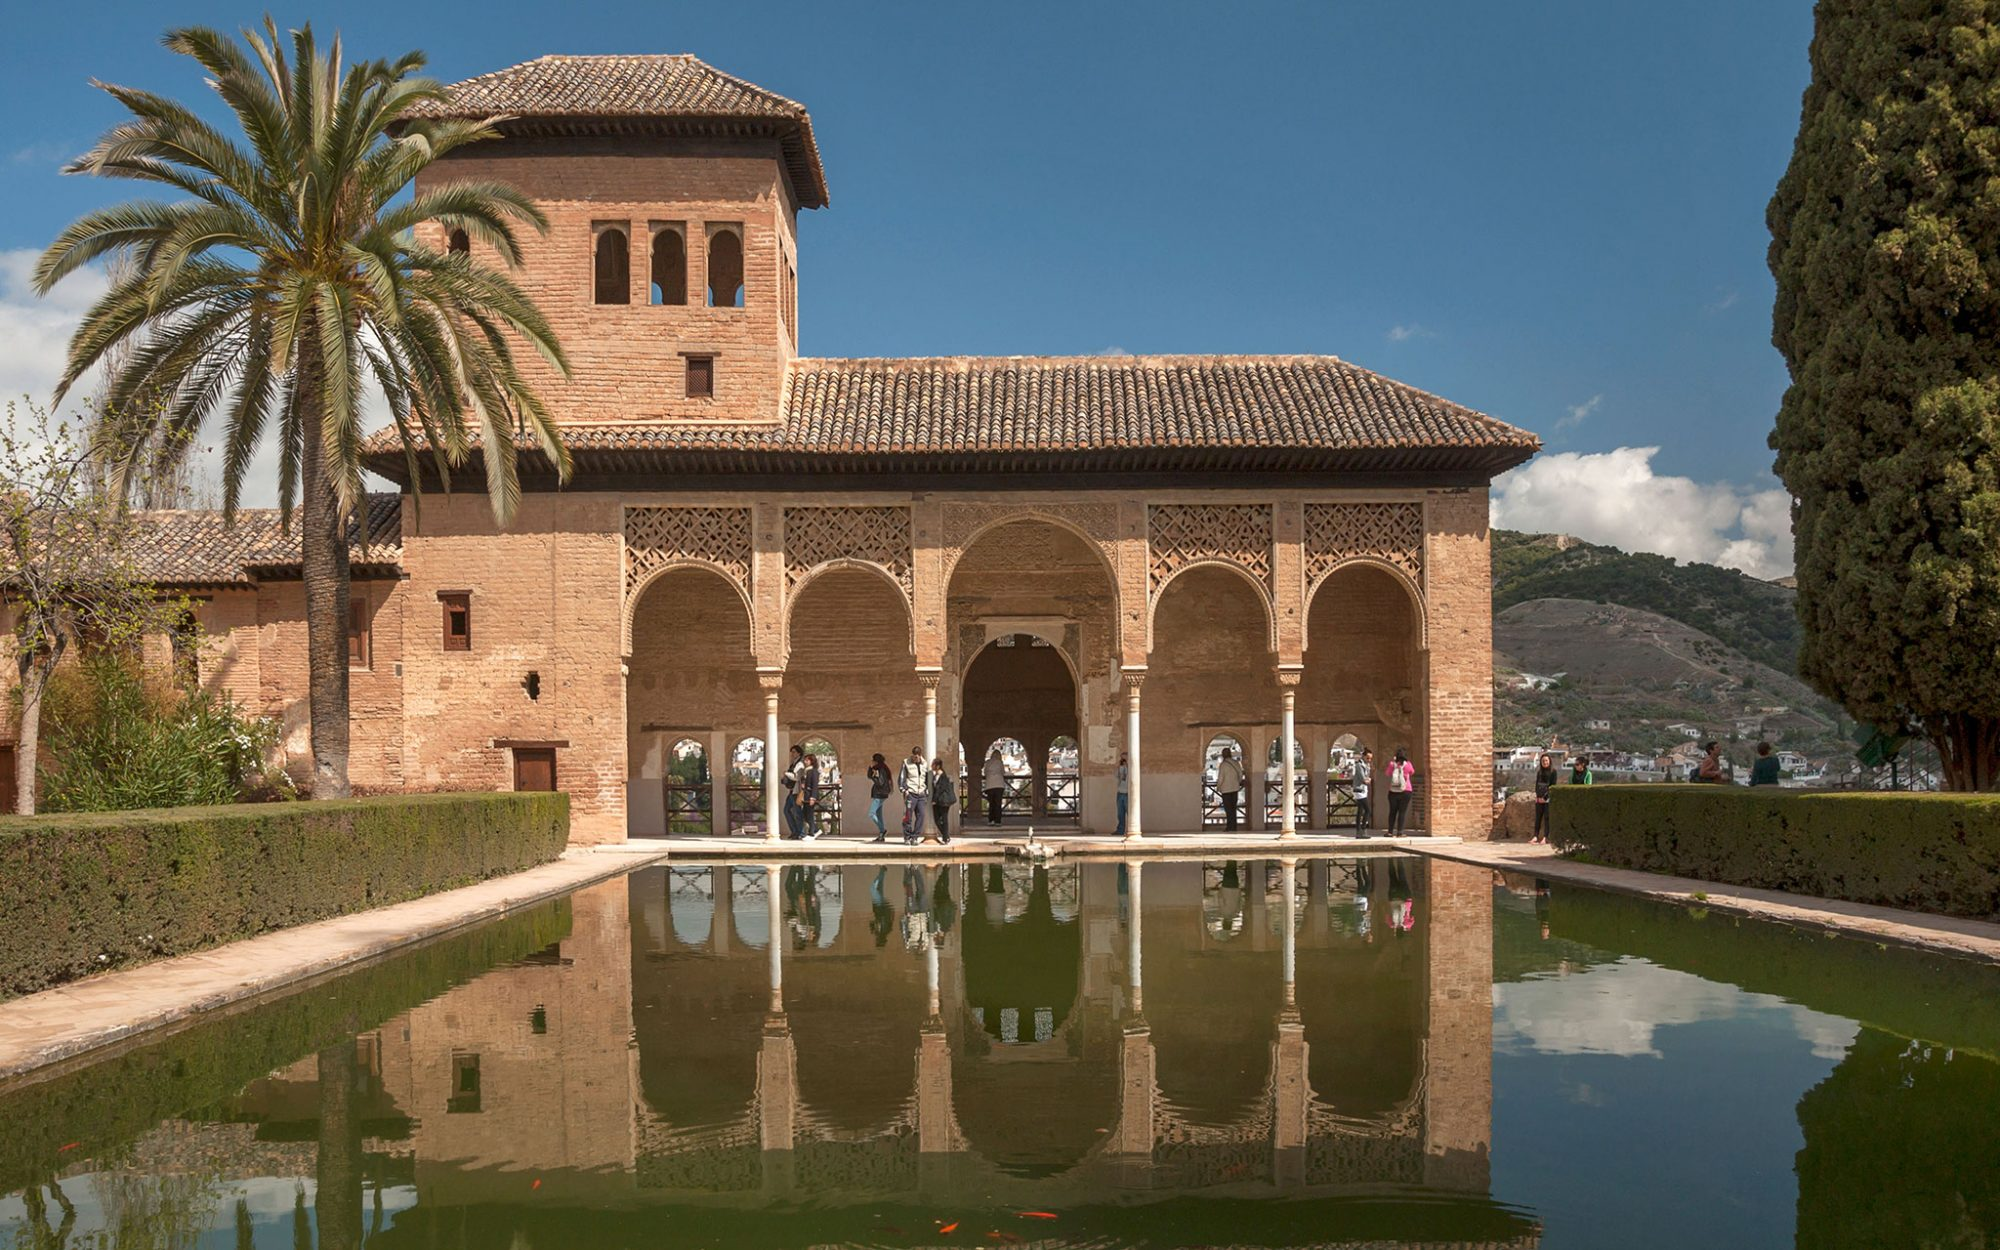 World's Most-Visited Castles: No. 9 Alhambra y Generalife, Grenada, Spain